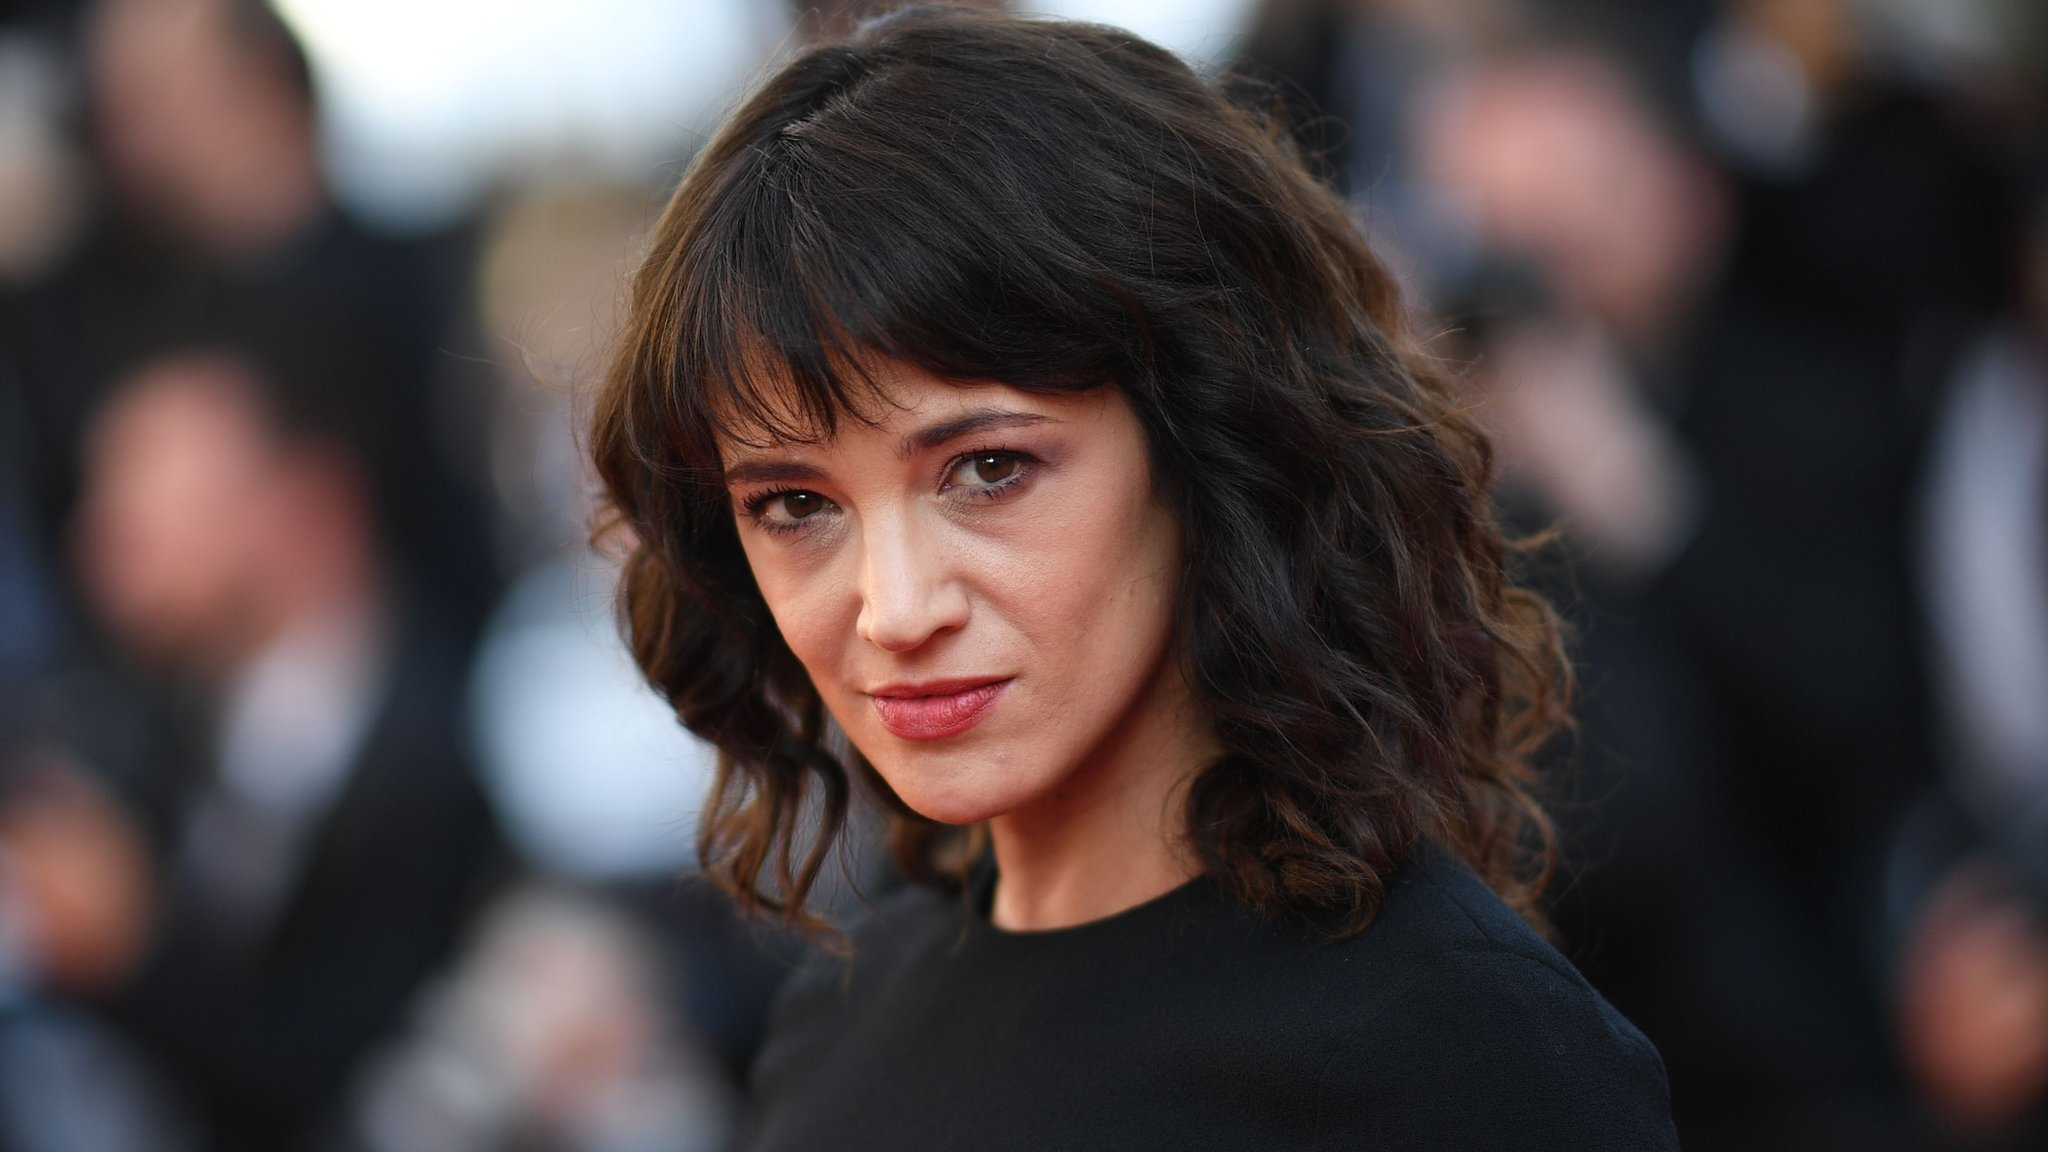 Asia Argento 'accused of sexual assault'